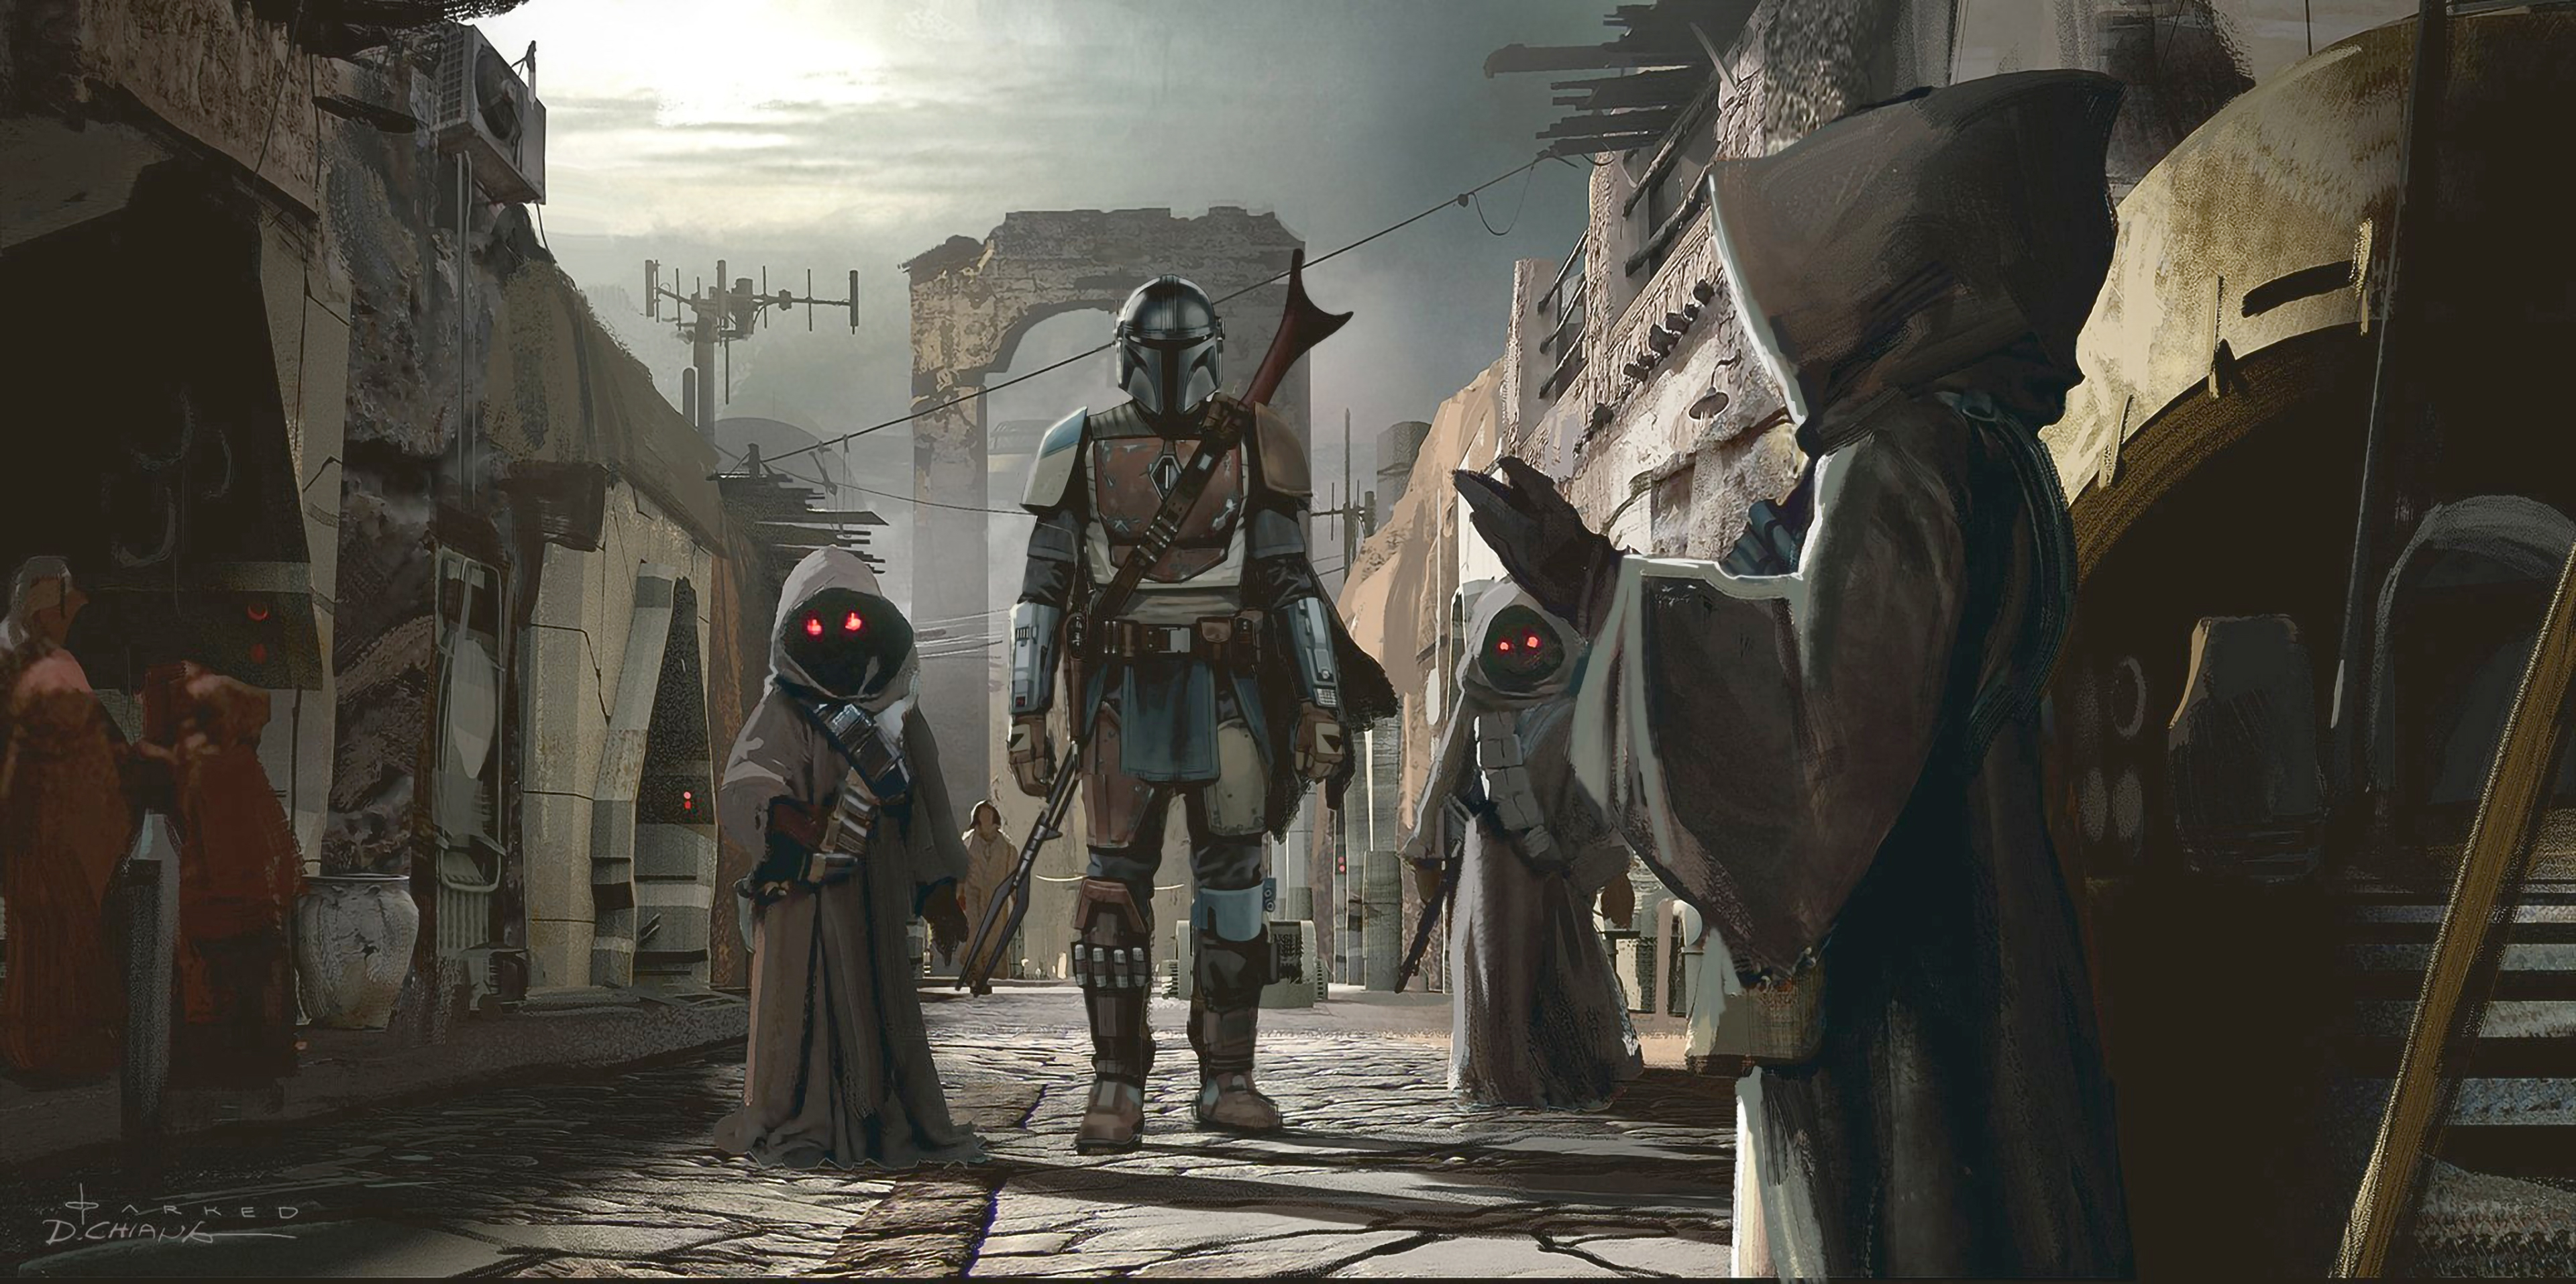 1920x1080 4k The Mandalorian Art 1080p Laptop Full Hd Wallpaper Hd Tv Series 4k Wallpapers Images Photos And Background